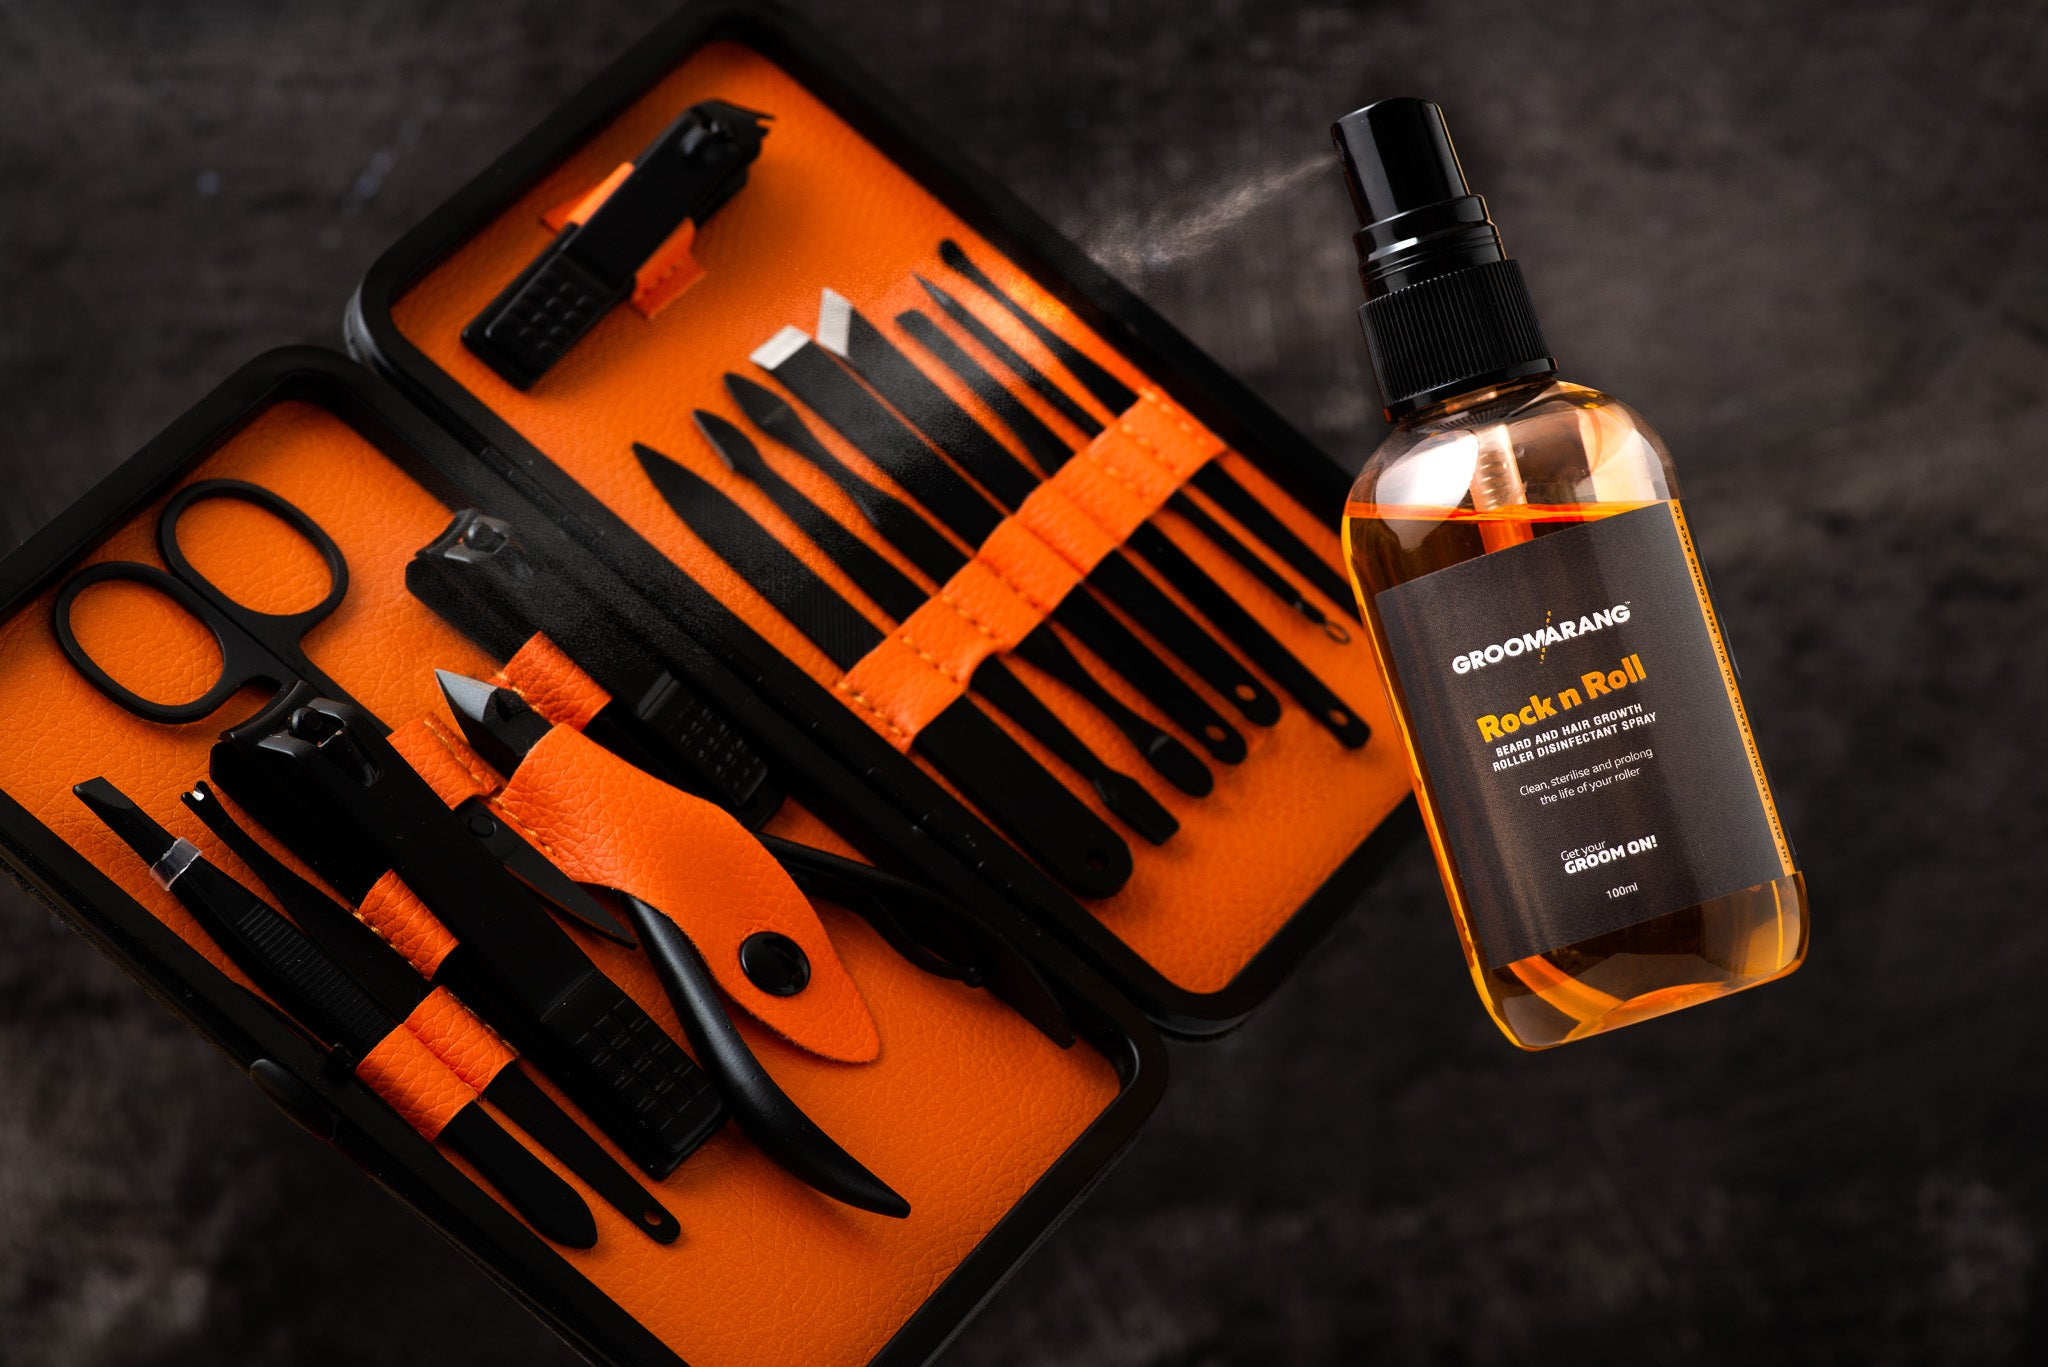 Groomarang 'Rock n Roll' Disinfectant Spray 100ml and 'The Ultimate' 15 Piece Mens Grooming Kit, Shaving & Grooming by Forever Cosmetics